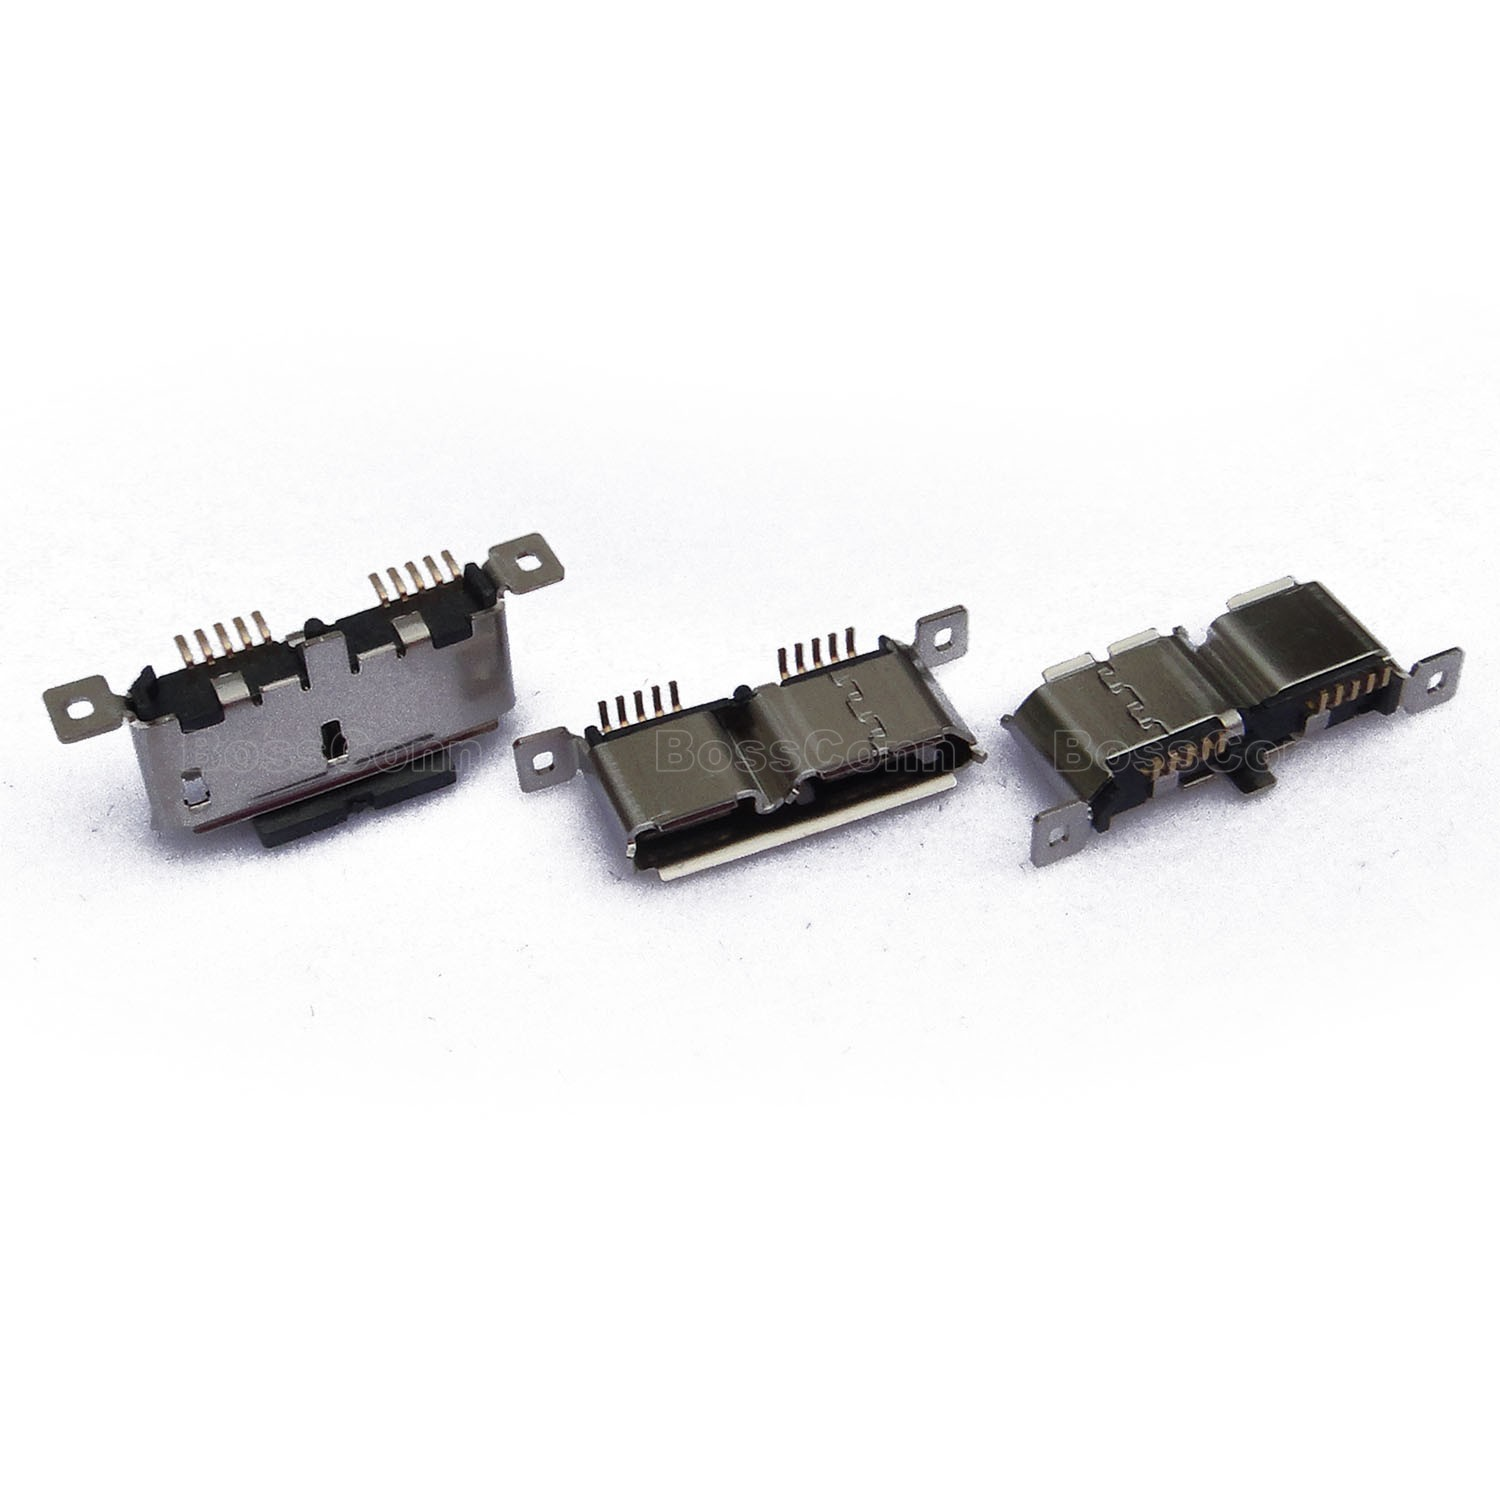 USB 3.0 Micro B Female Connector, Vertical Type